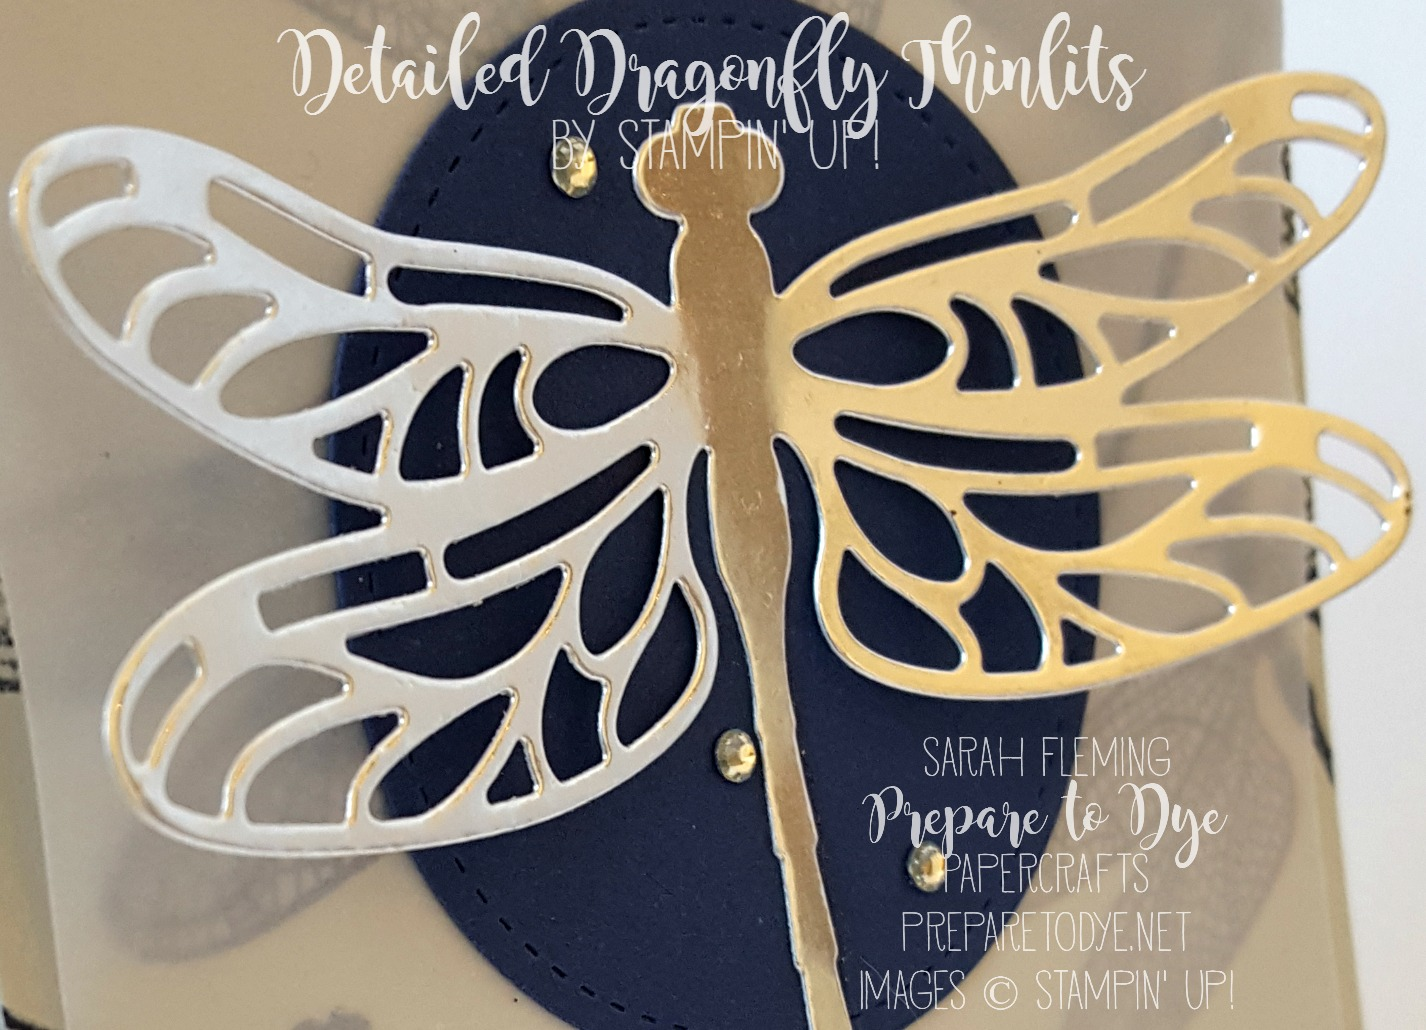 Stampin' Up! Detailed Dragonfly Thinlits are beautiful in Silver Foil!